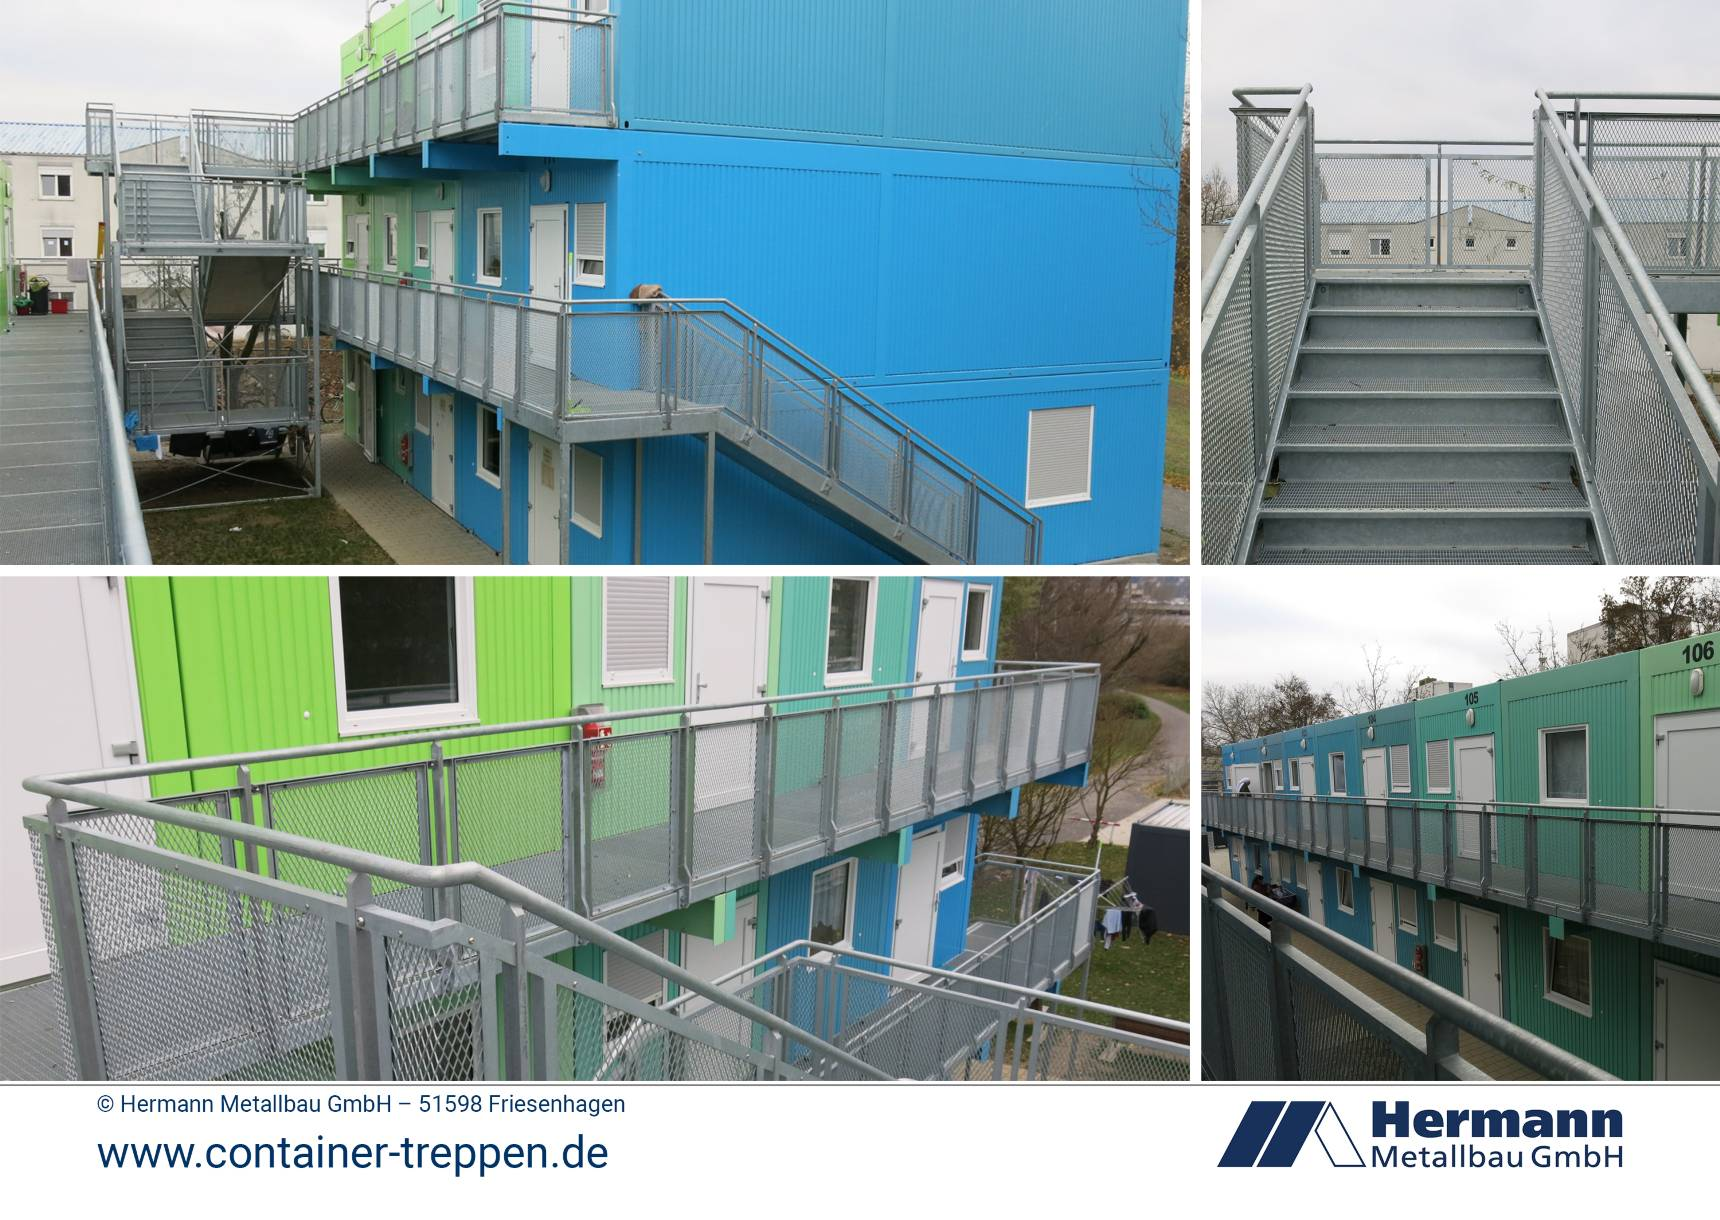 Containertreppenanlage A (10)